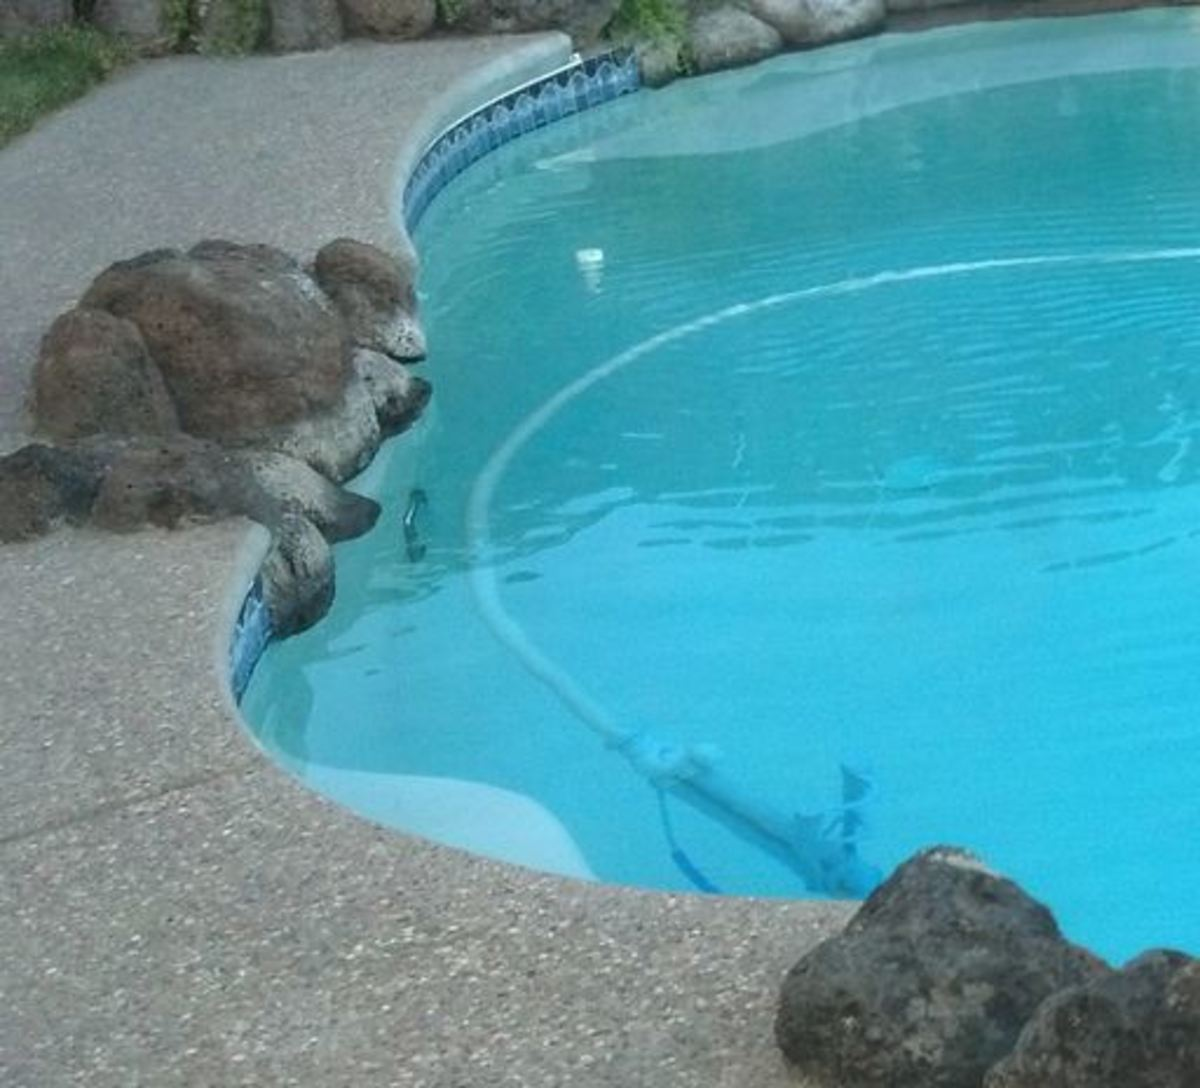 Pool Cleaning with Kreepy Krauly